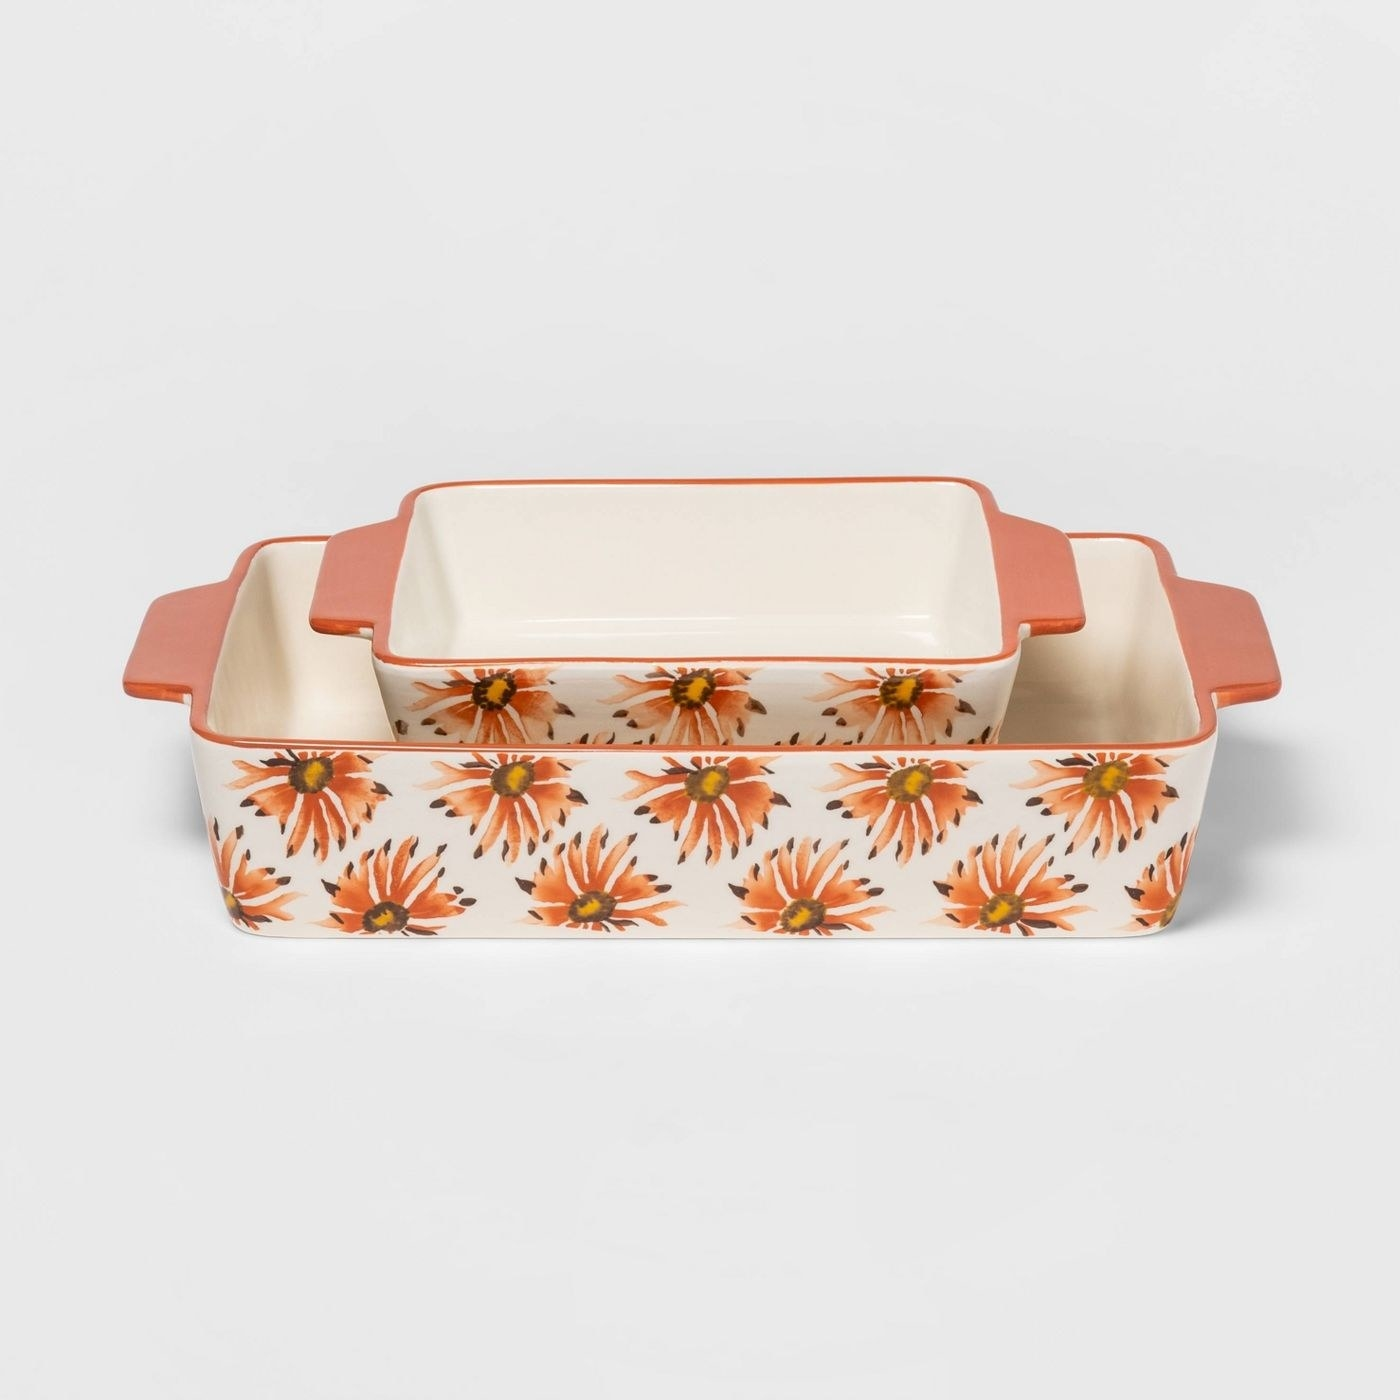 the two floral casserole dishes